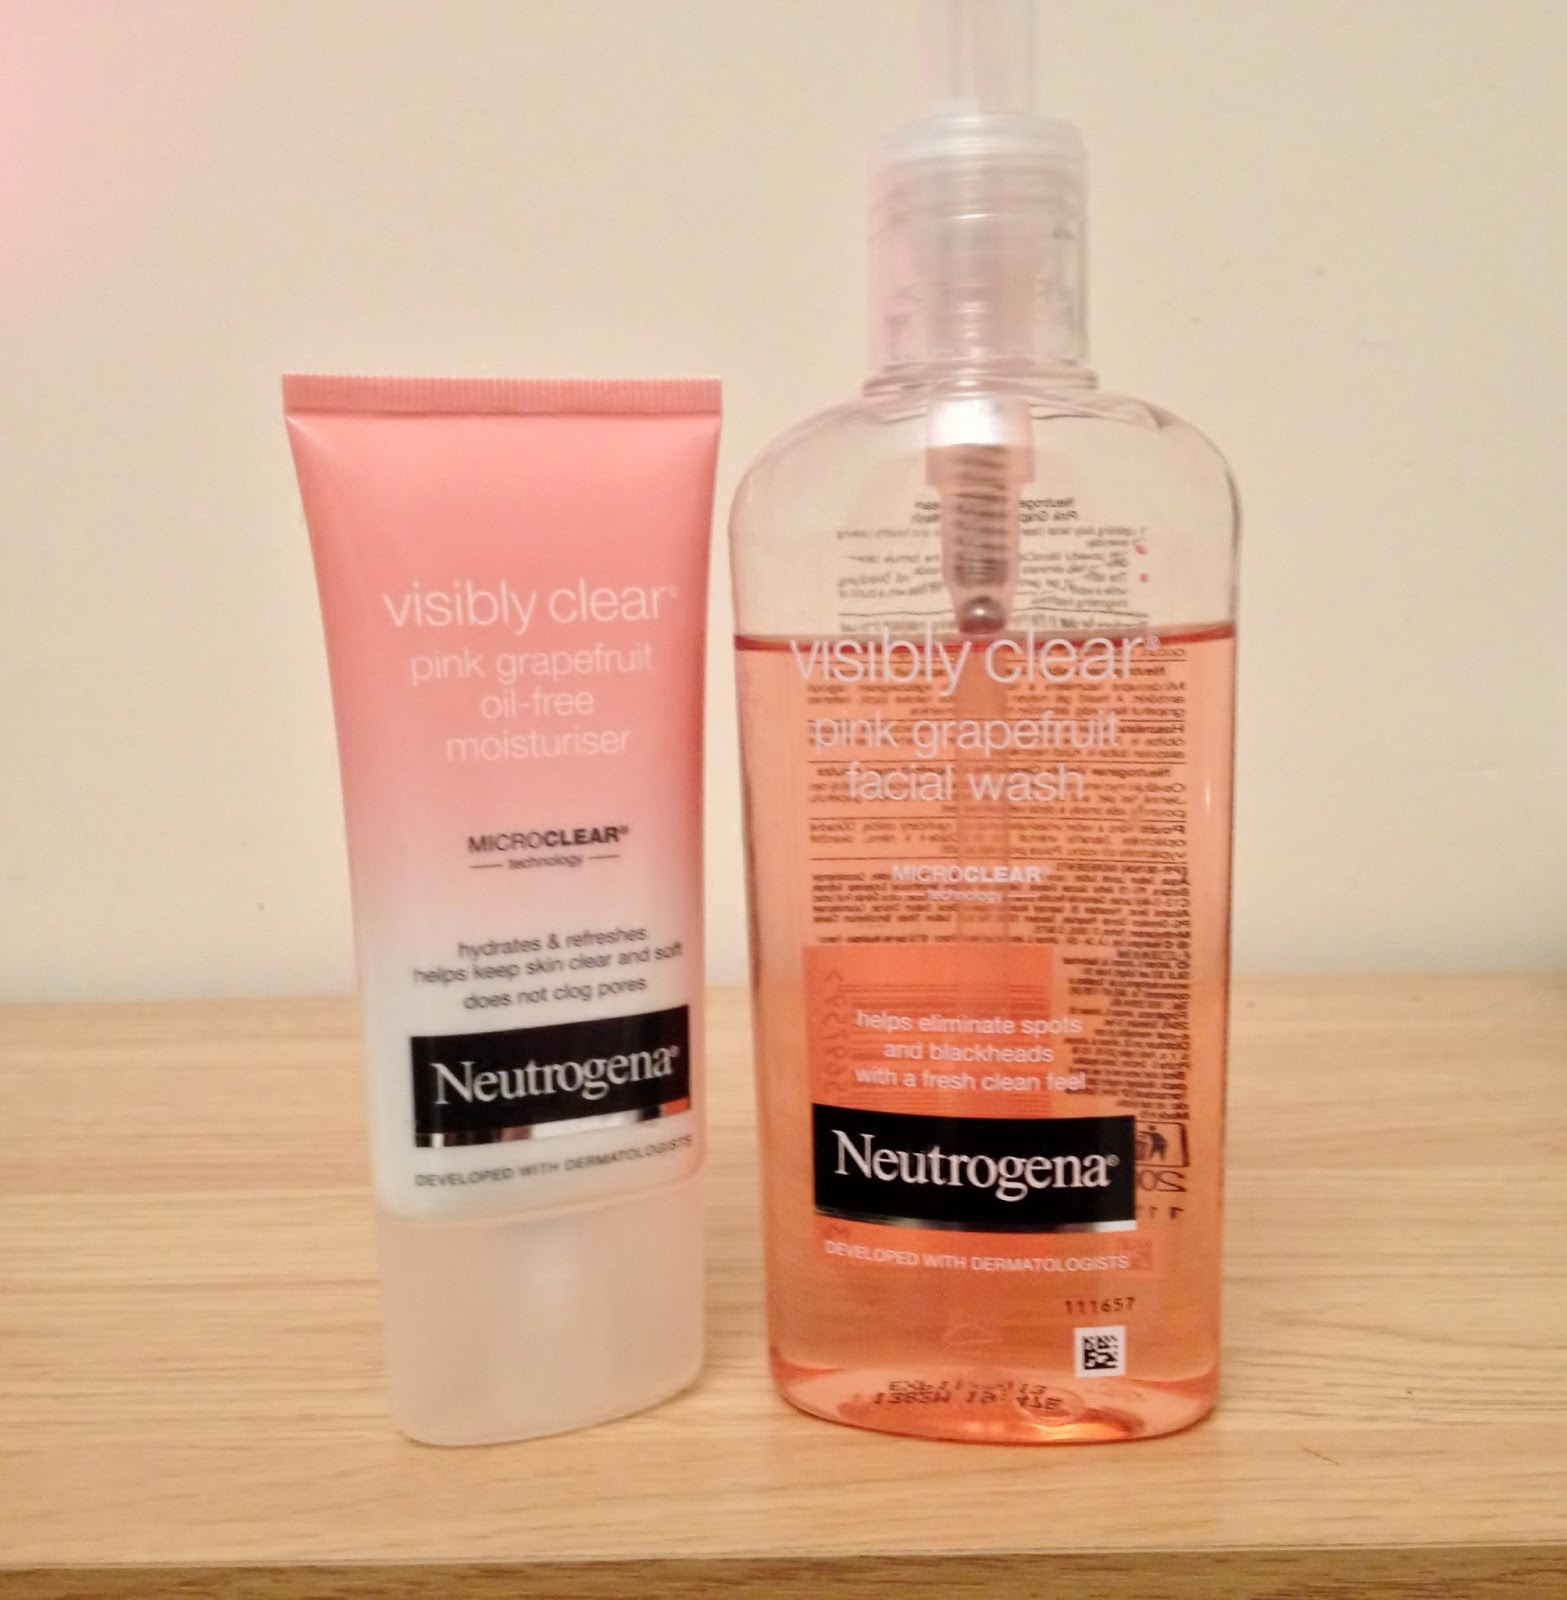 Neutrogena Visibly Clear Pink Grapefruit Facial Wash And Oil Free